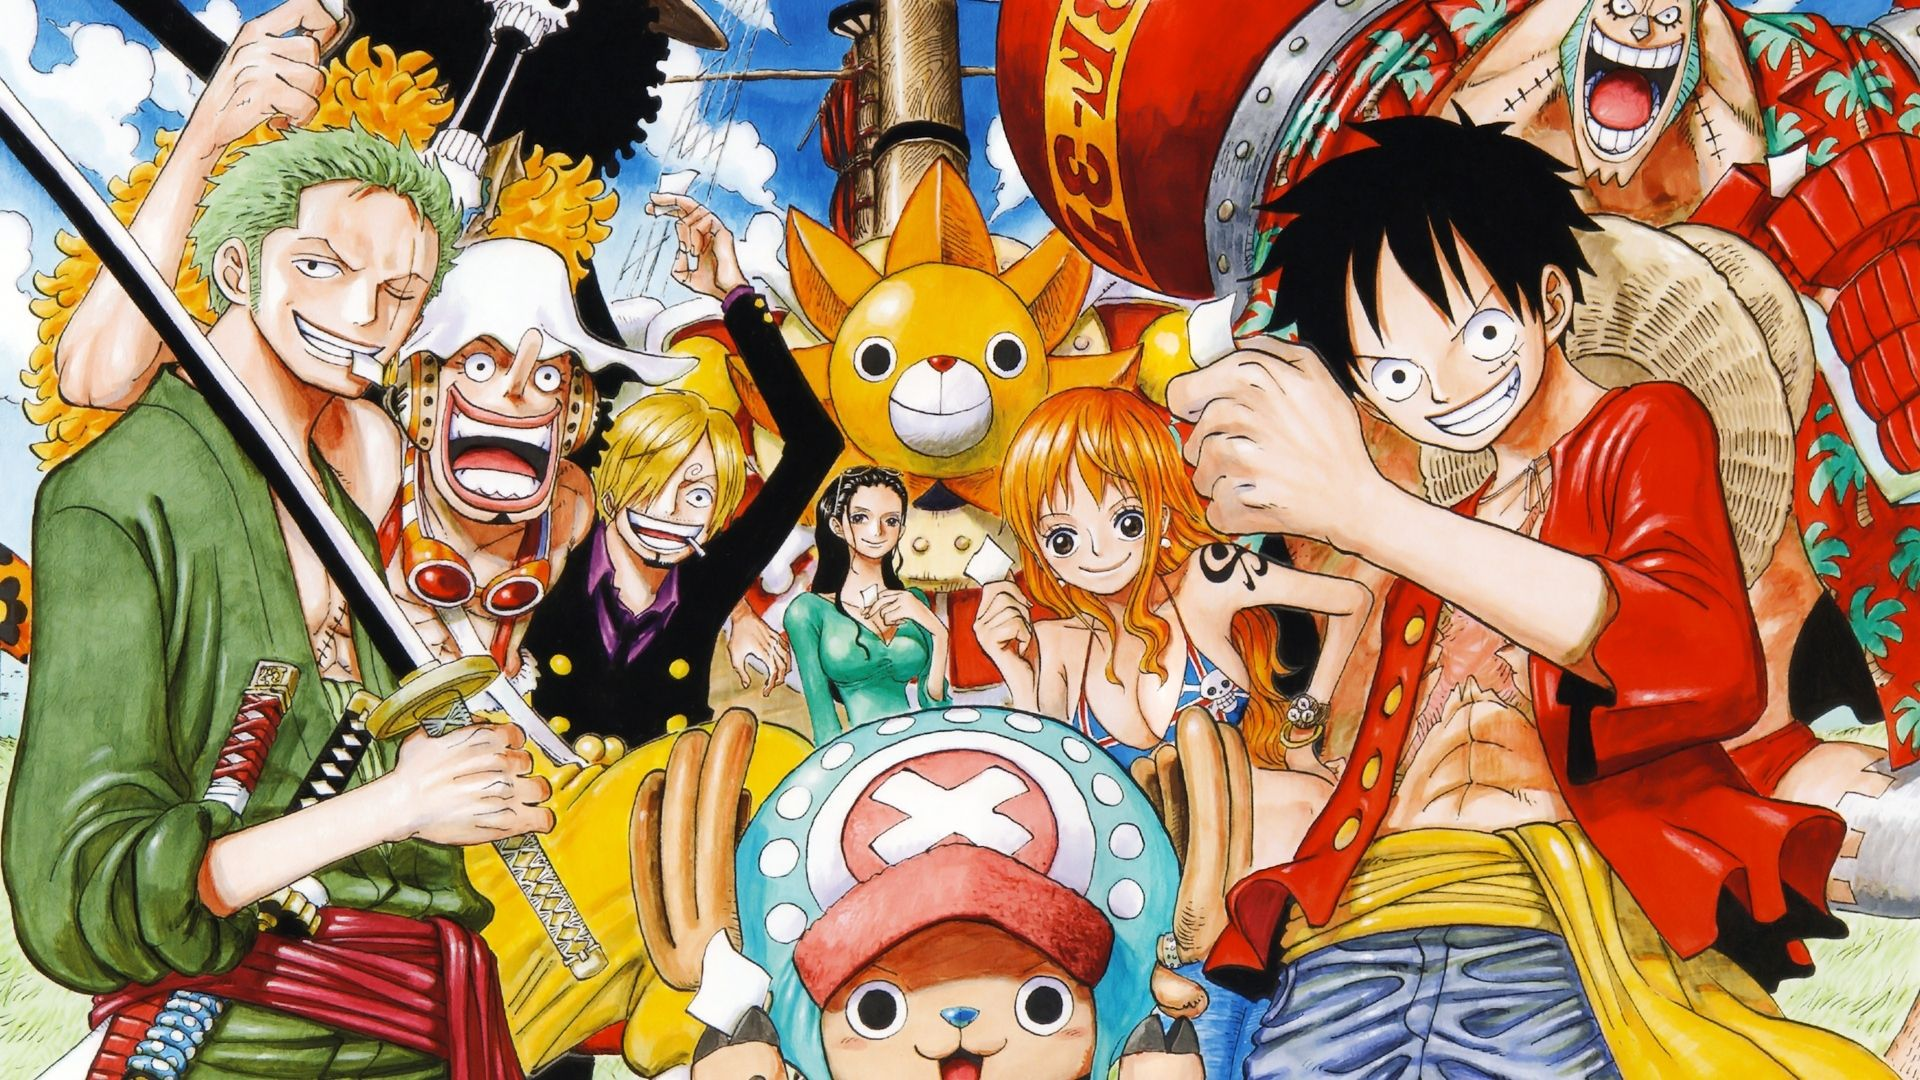 One Piece Anime Desktop Wallpapers Top Free One Piece Anime Desktop Backgrounds Wallpaperaccess